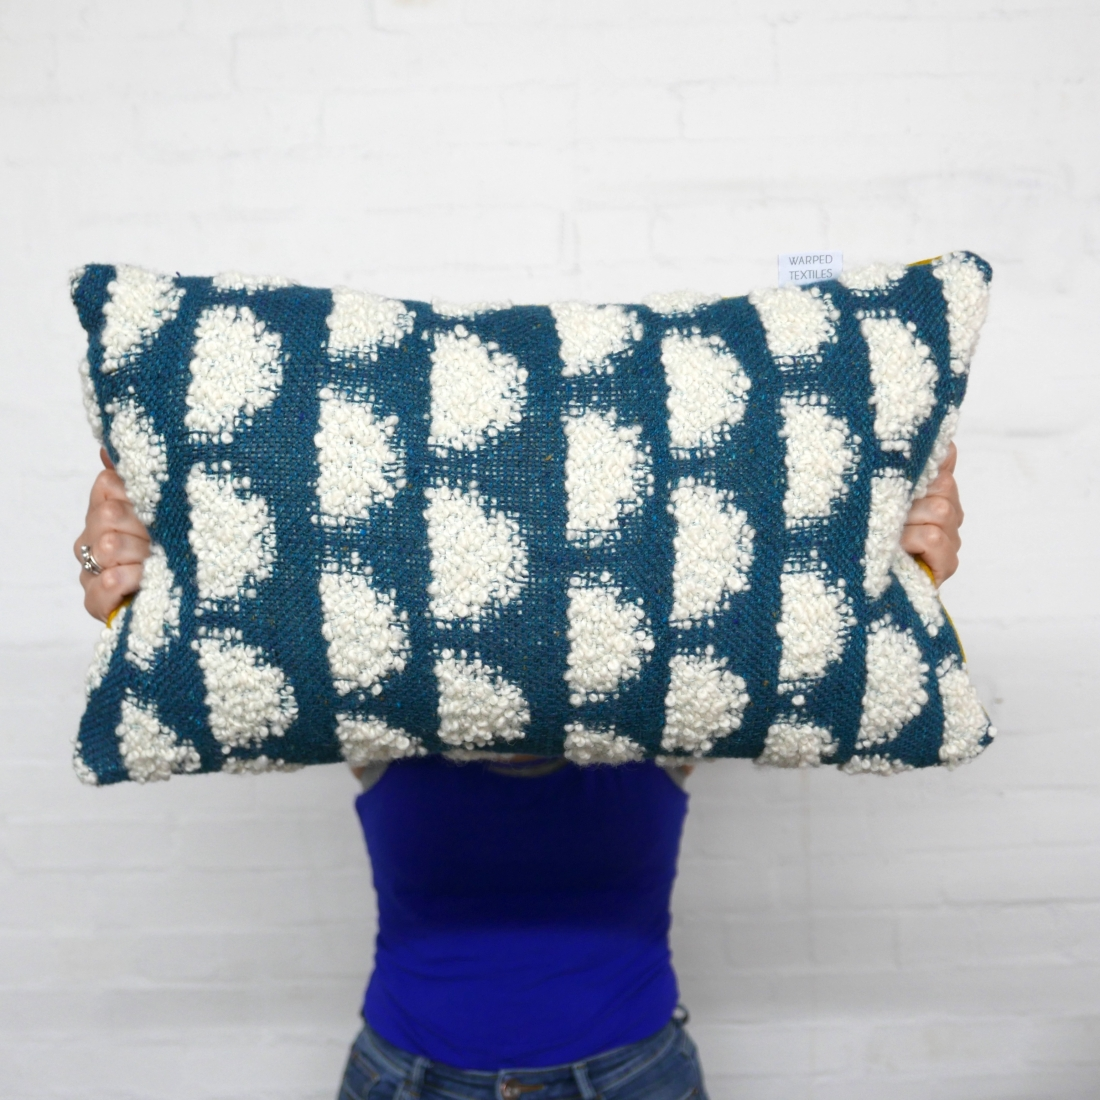 Handwoven Half Moon cushions, woven with a mixture of textural mohair loop yarn & lambswool and backed with 100% wool felt (Photographer: Mike Allen)